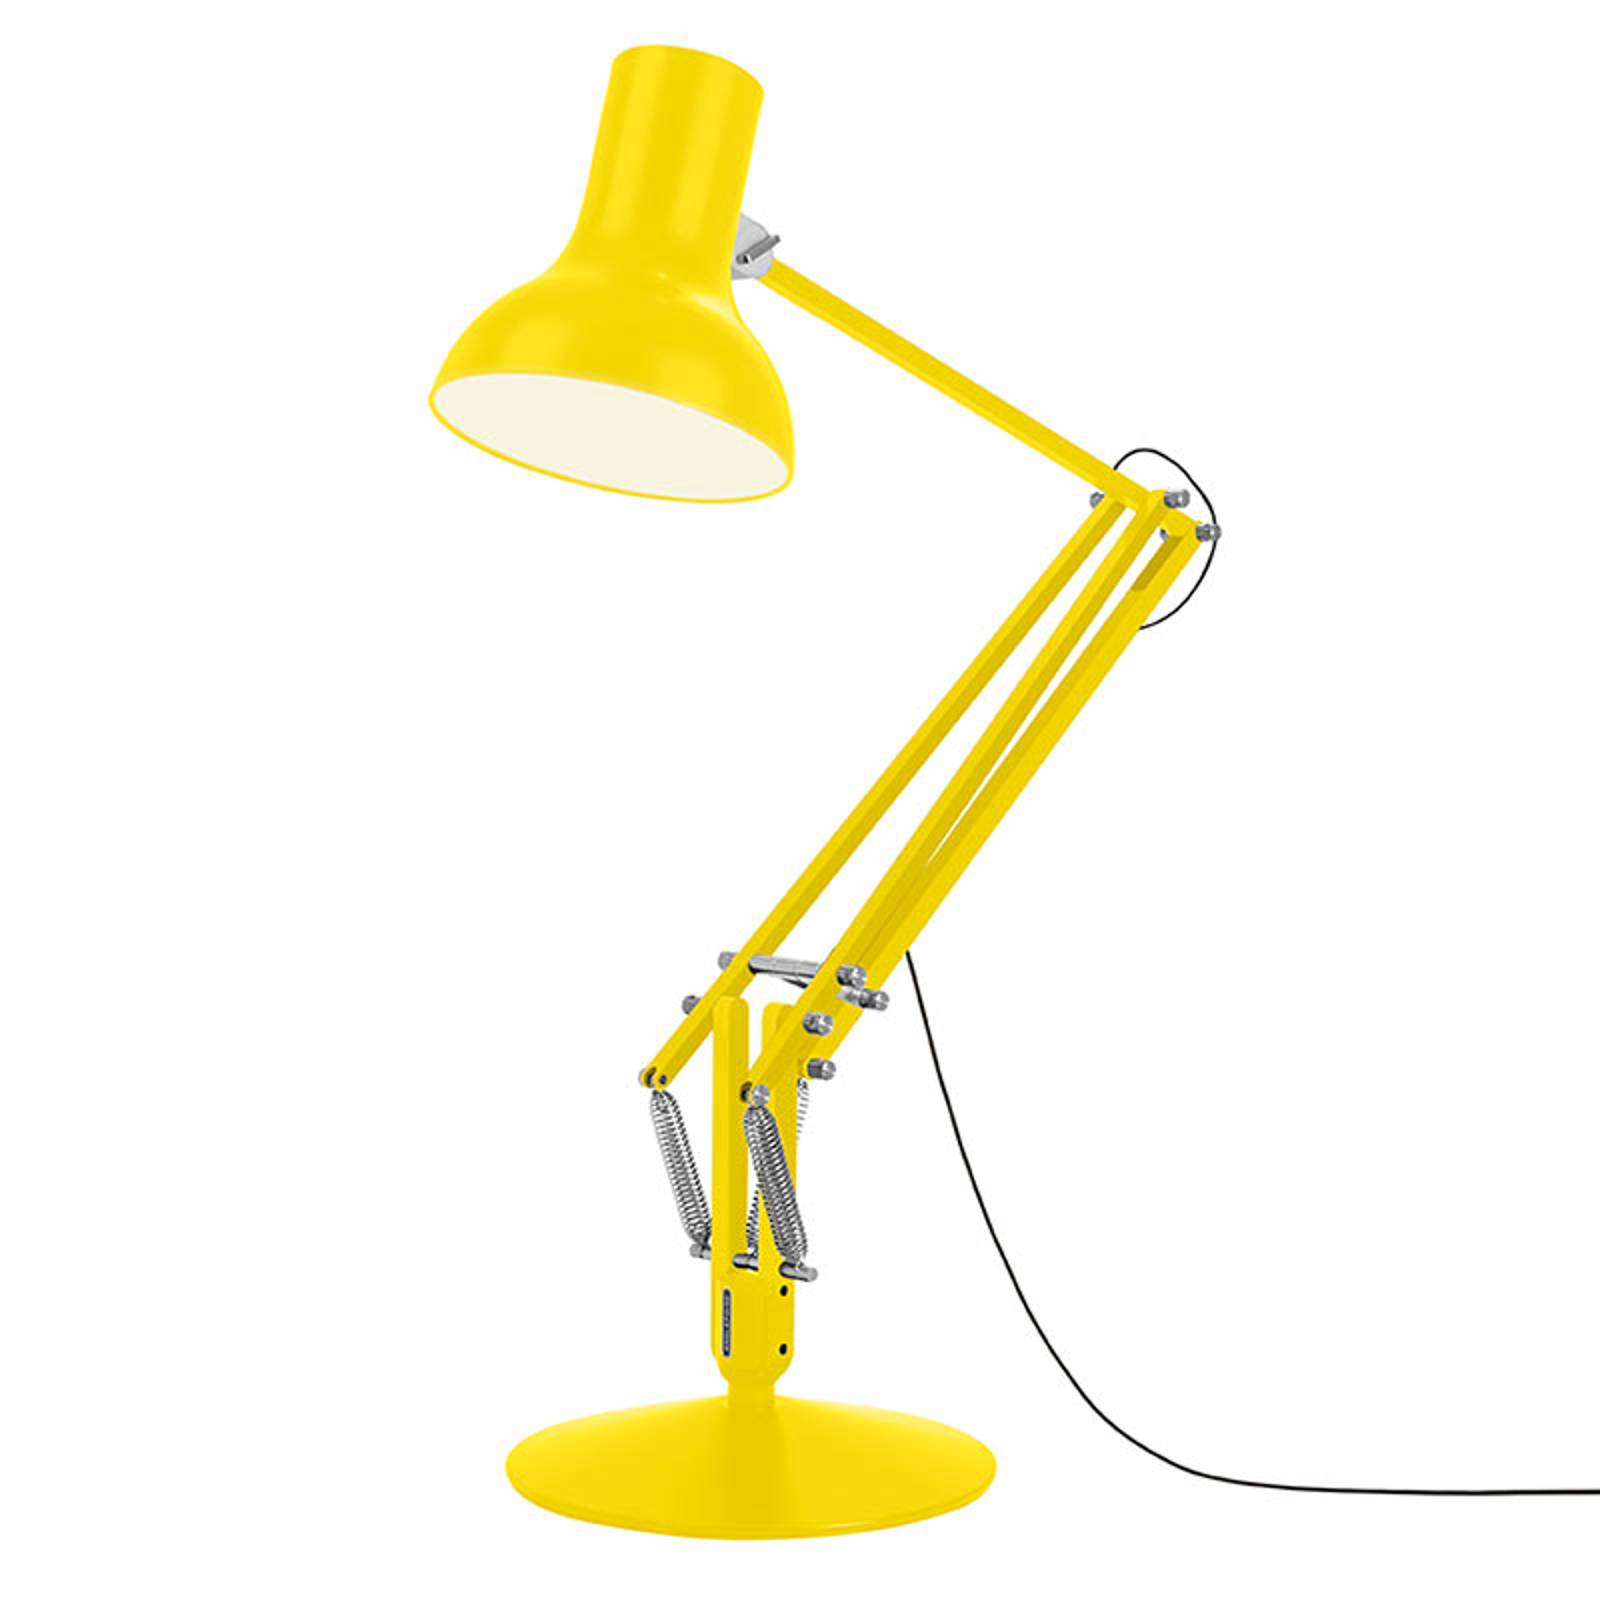 Anglepoise Type 75 Giant Stehleuchte gelb von Anglepoise